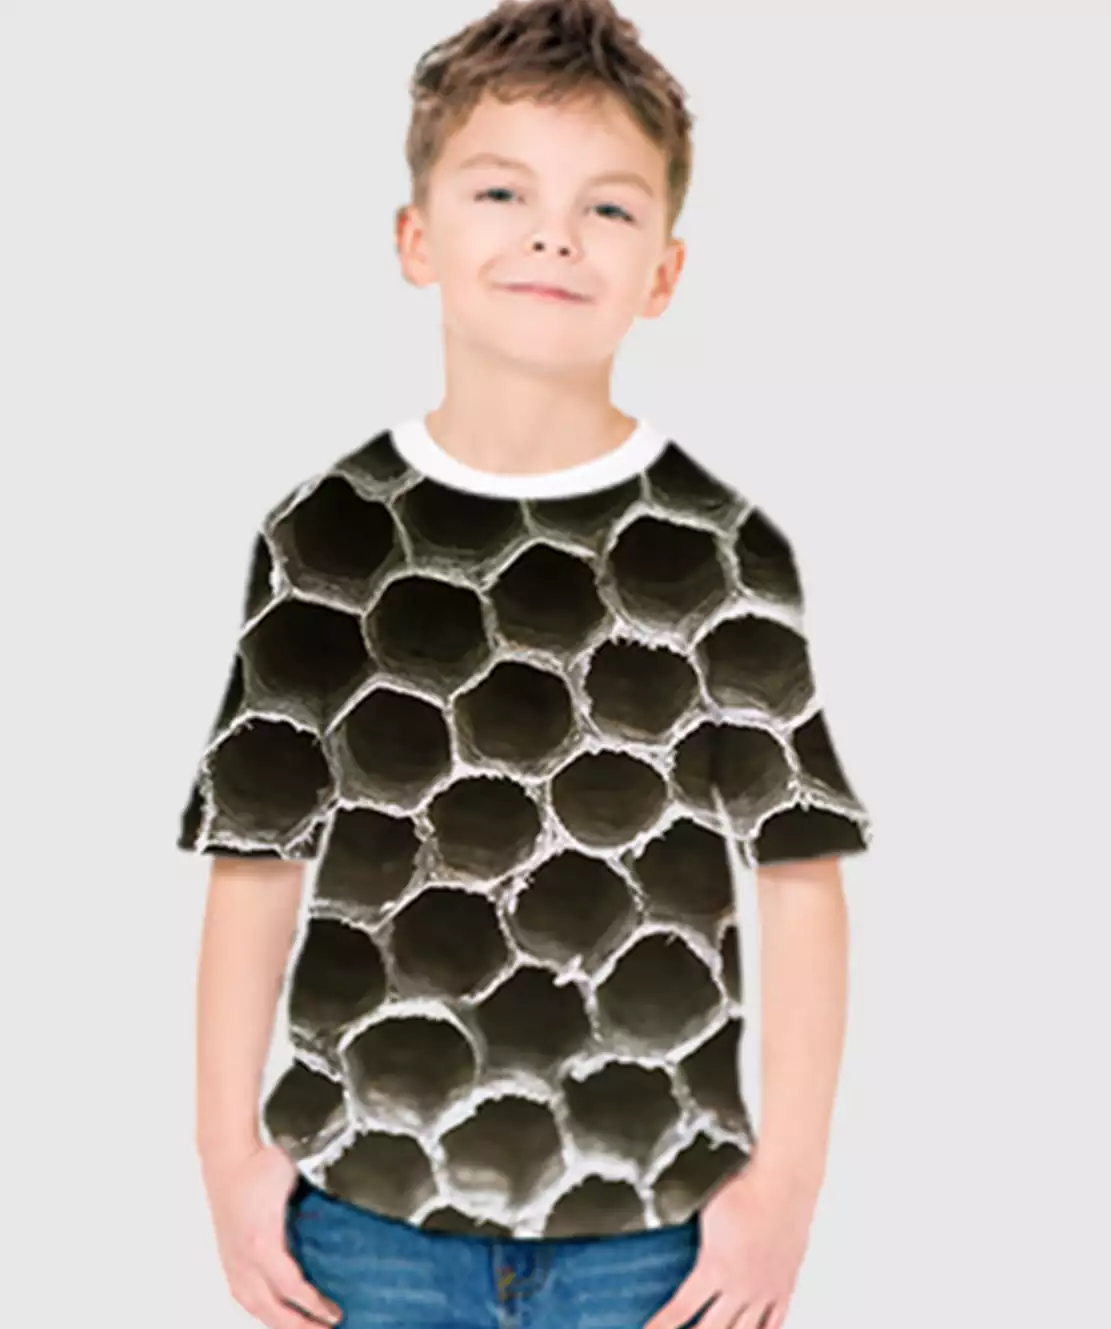 Boys Round Neck Half Printed 3D Holes T-Shirt